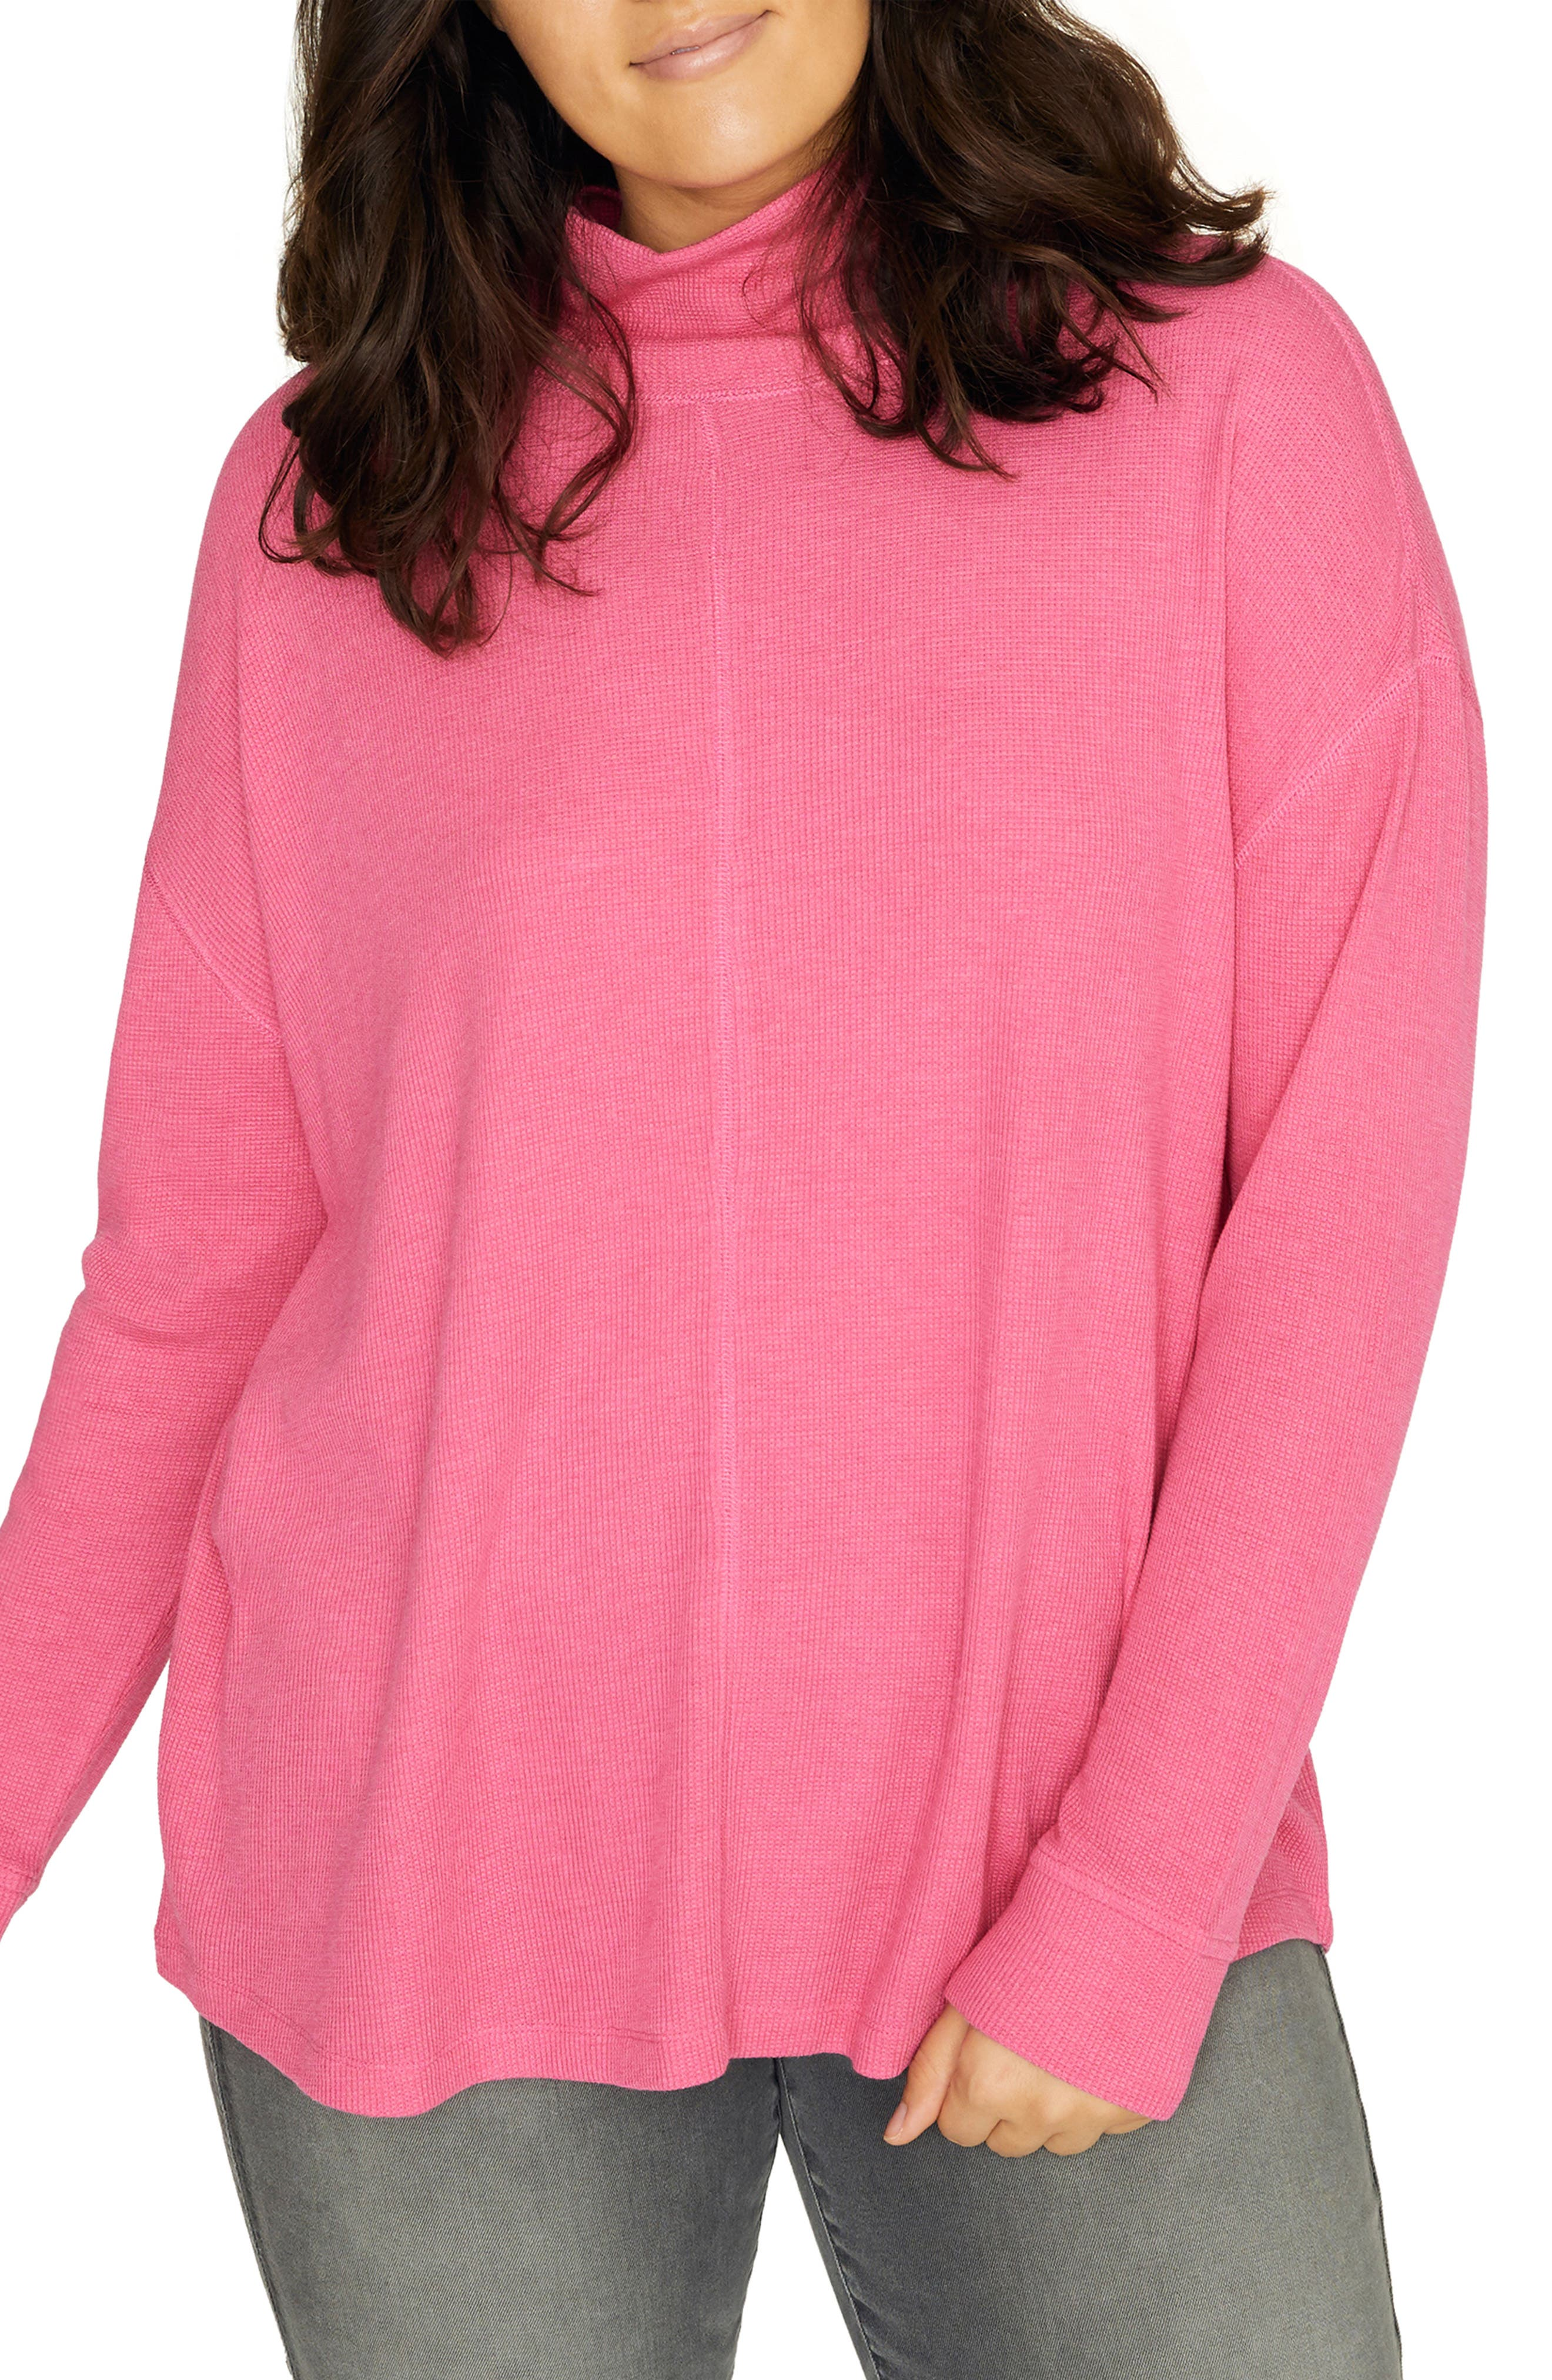 Plus Size Sanctuary Highroad Thermal Tee, Pink